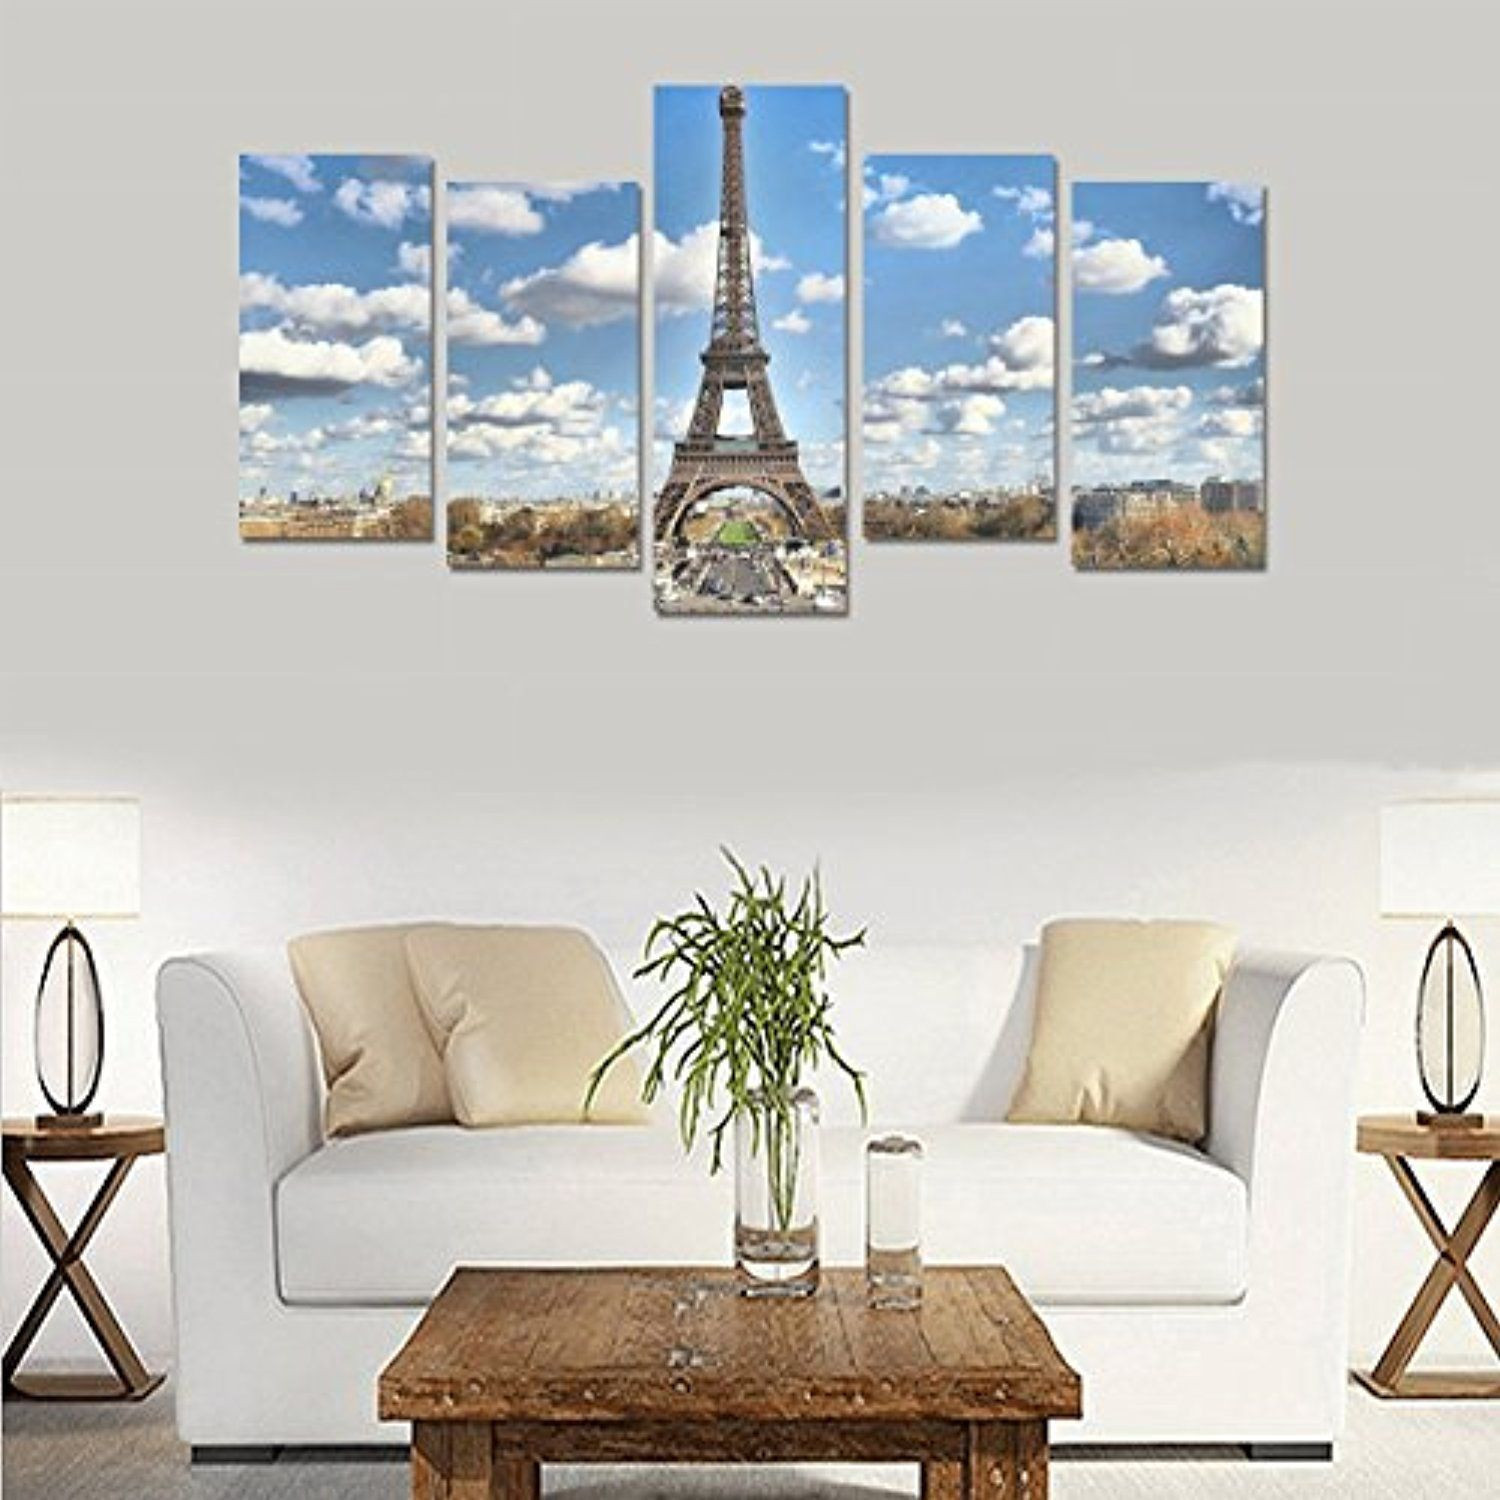 Eiffel tower Glass Vase Of Wall Decor Eiffel tower Best Of New York Decor Nouveau Metal Wall Intended for Wall Decor Eiffel tower Best Of New York Decor Nouveau Metal Wall Art Panels Fresh 1